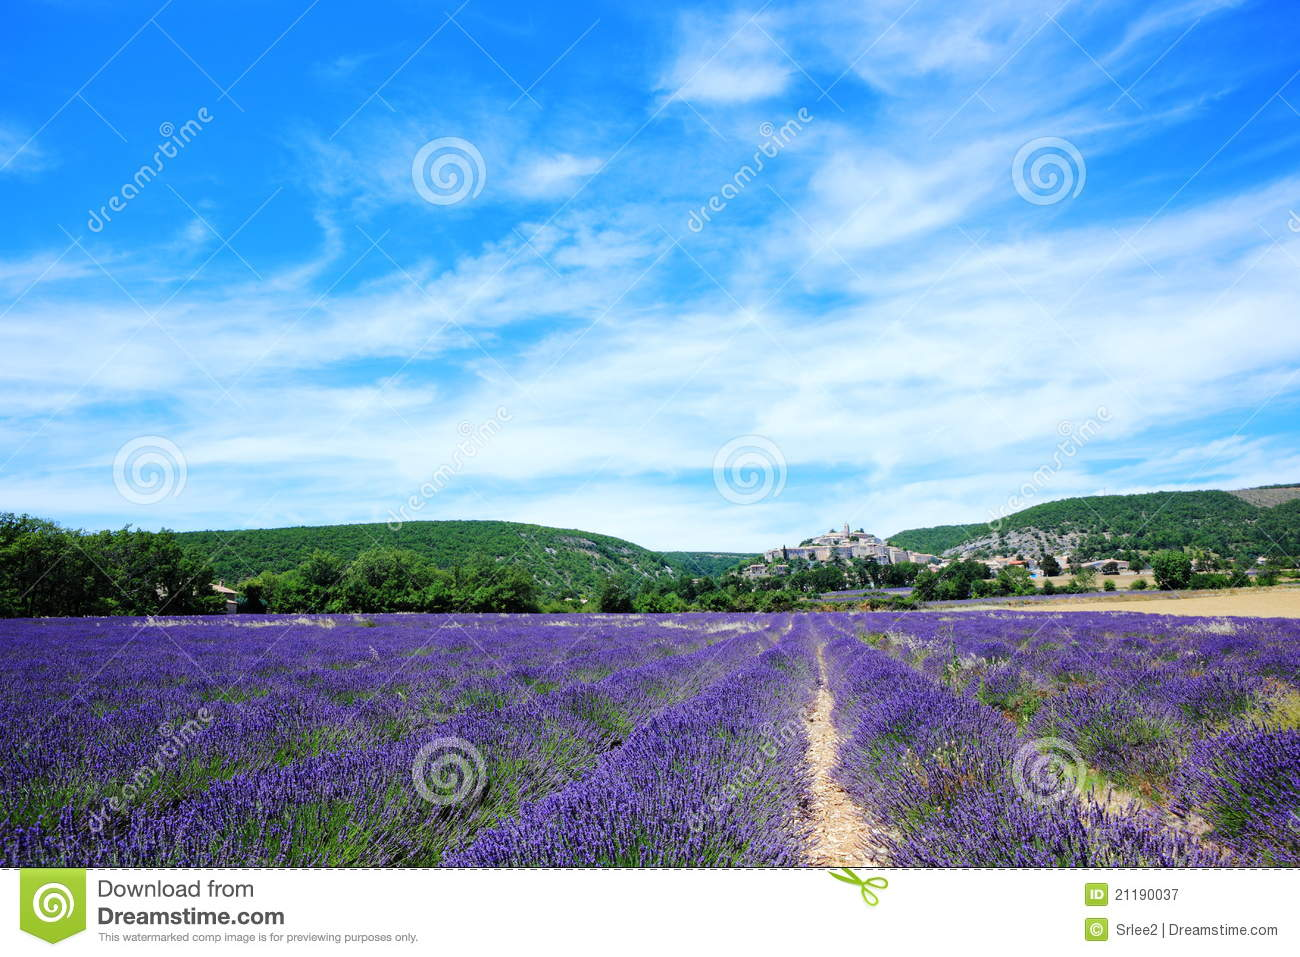 Lavender field at Banon, France